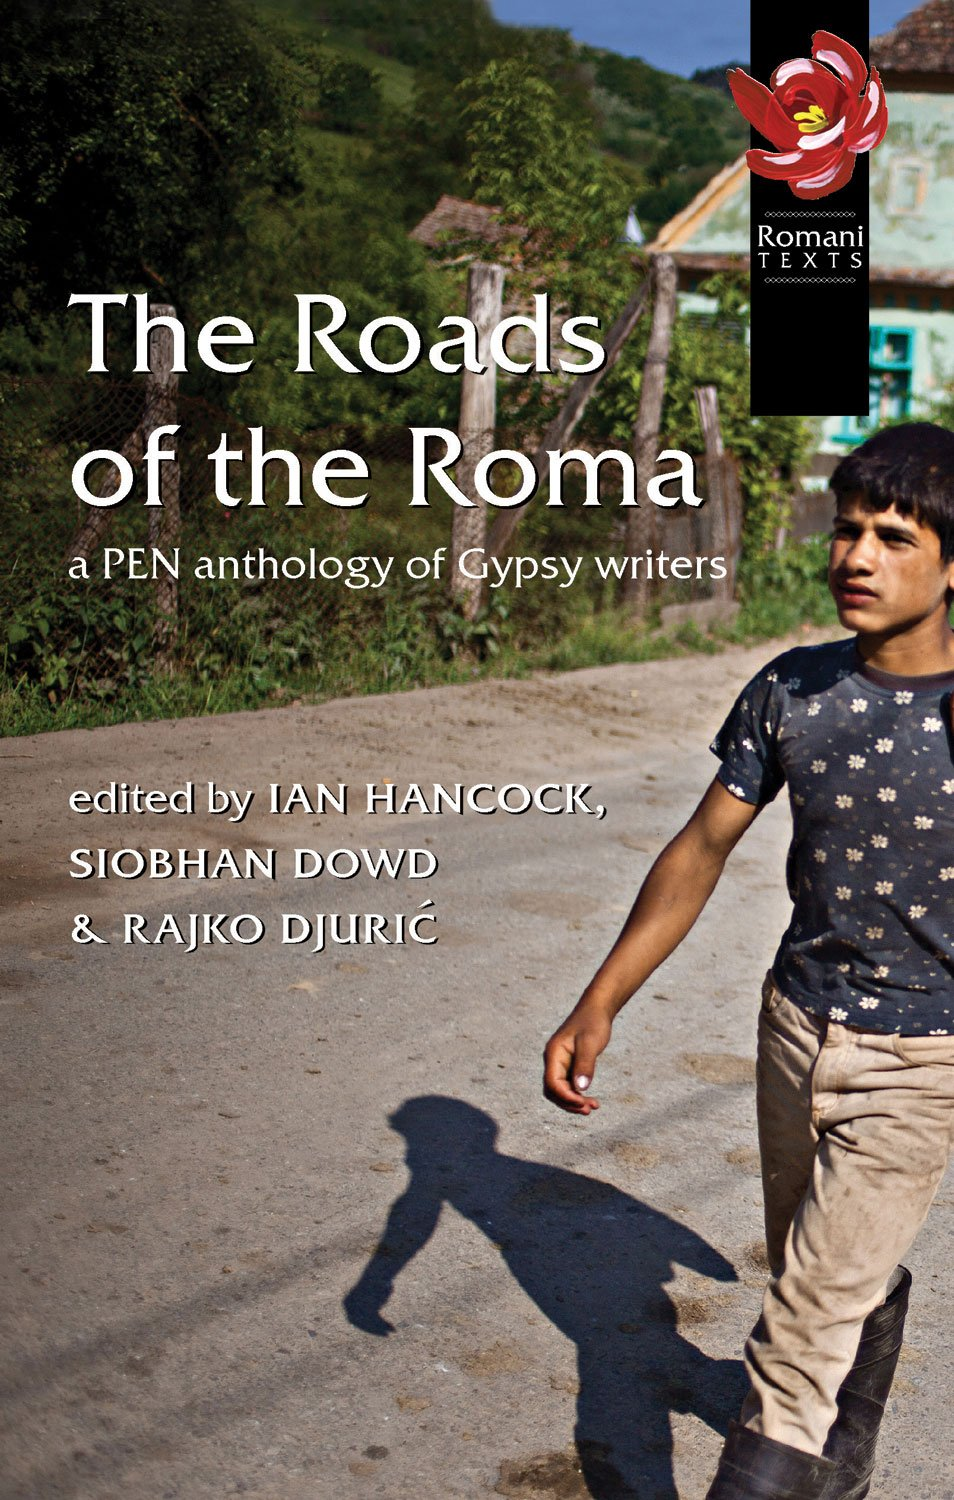 The Roads of the Roma: A PEN Anthology of Gypsy Writers (Pen